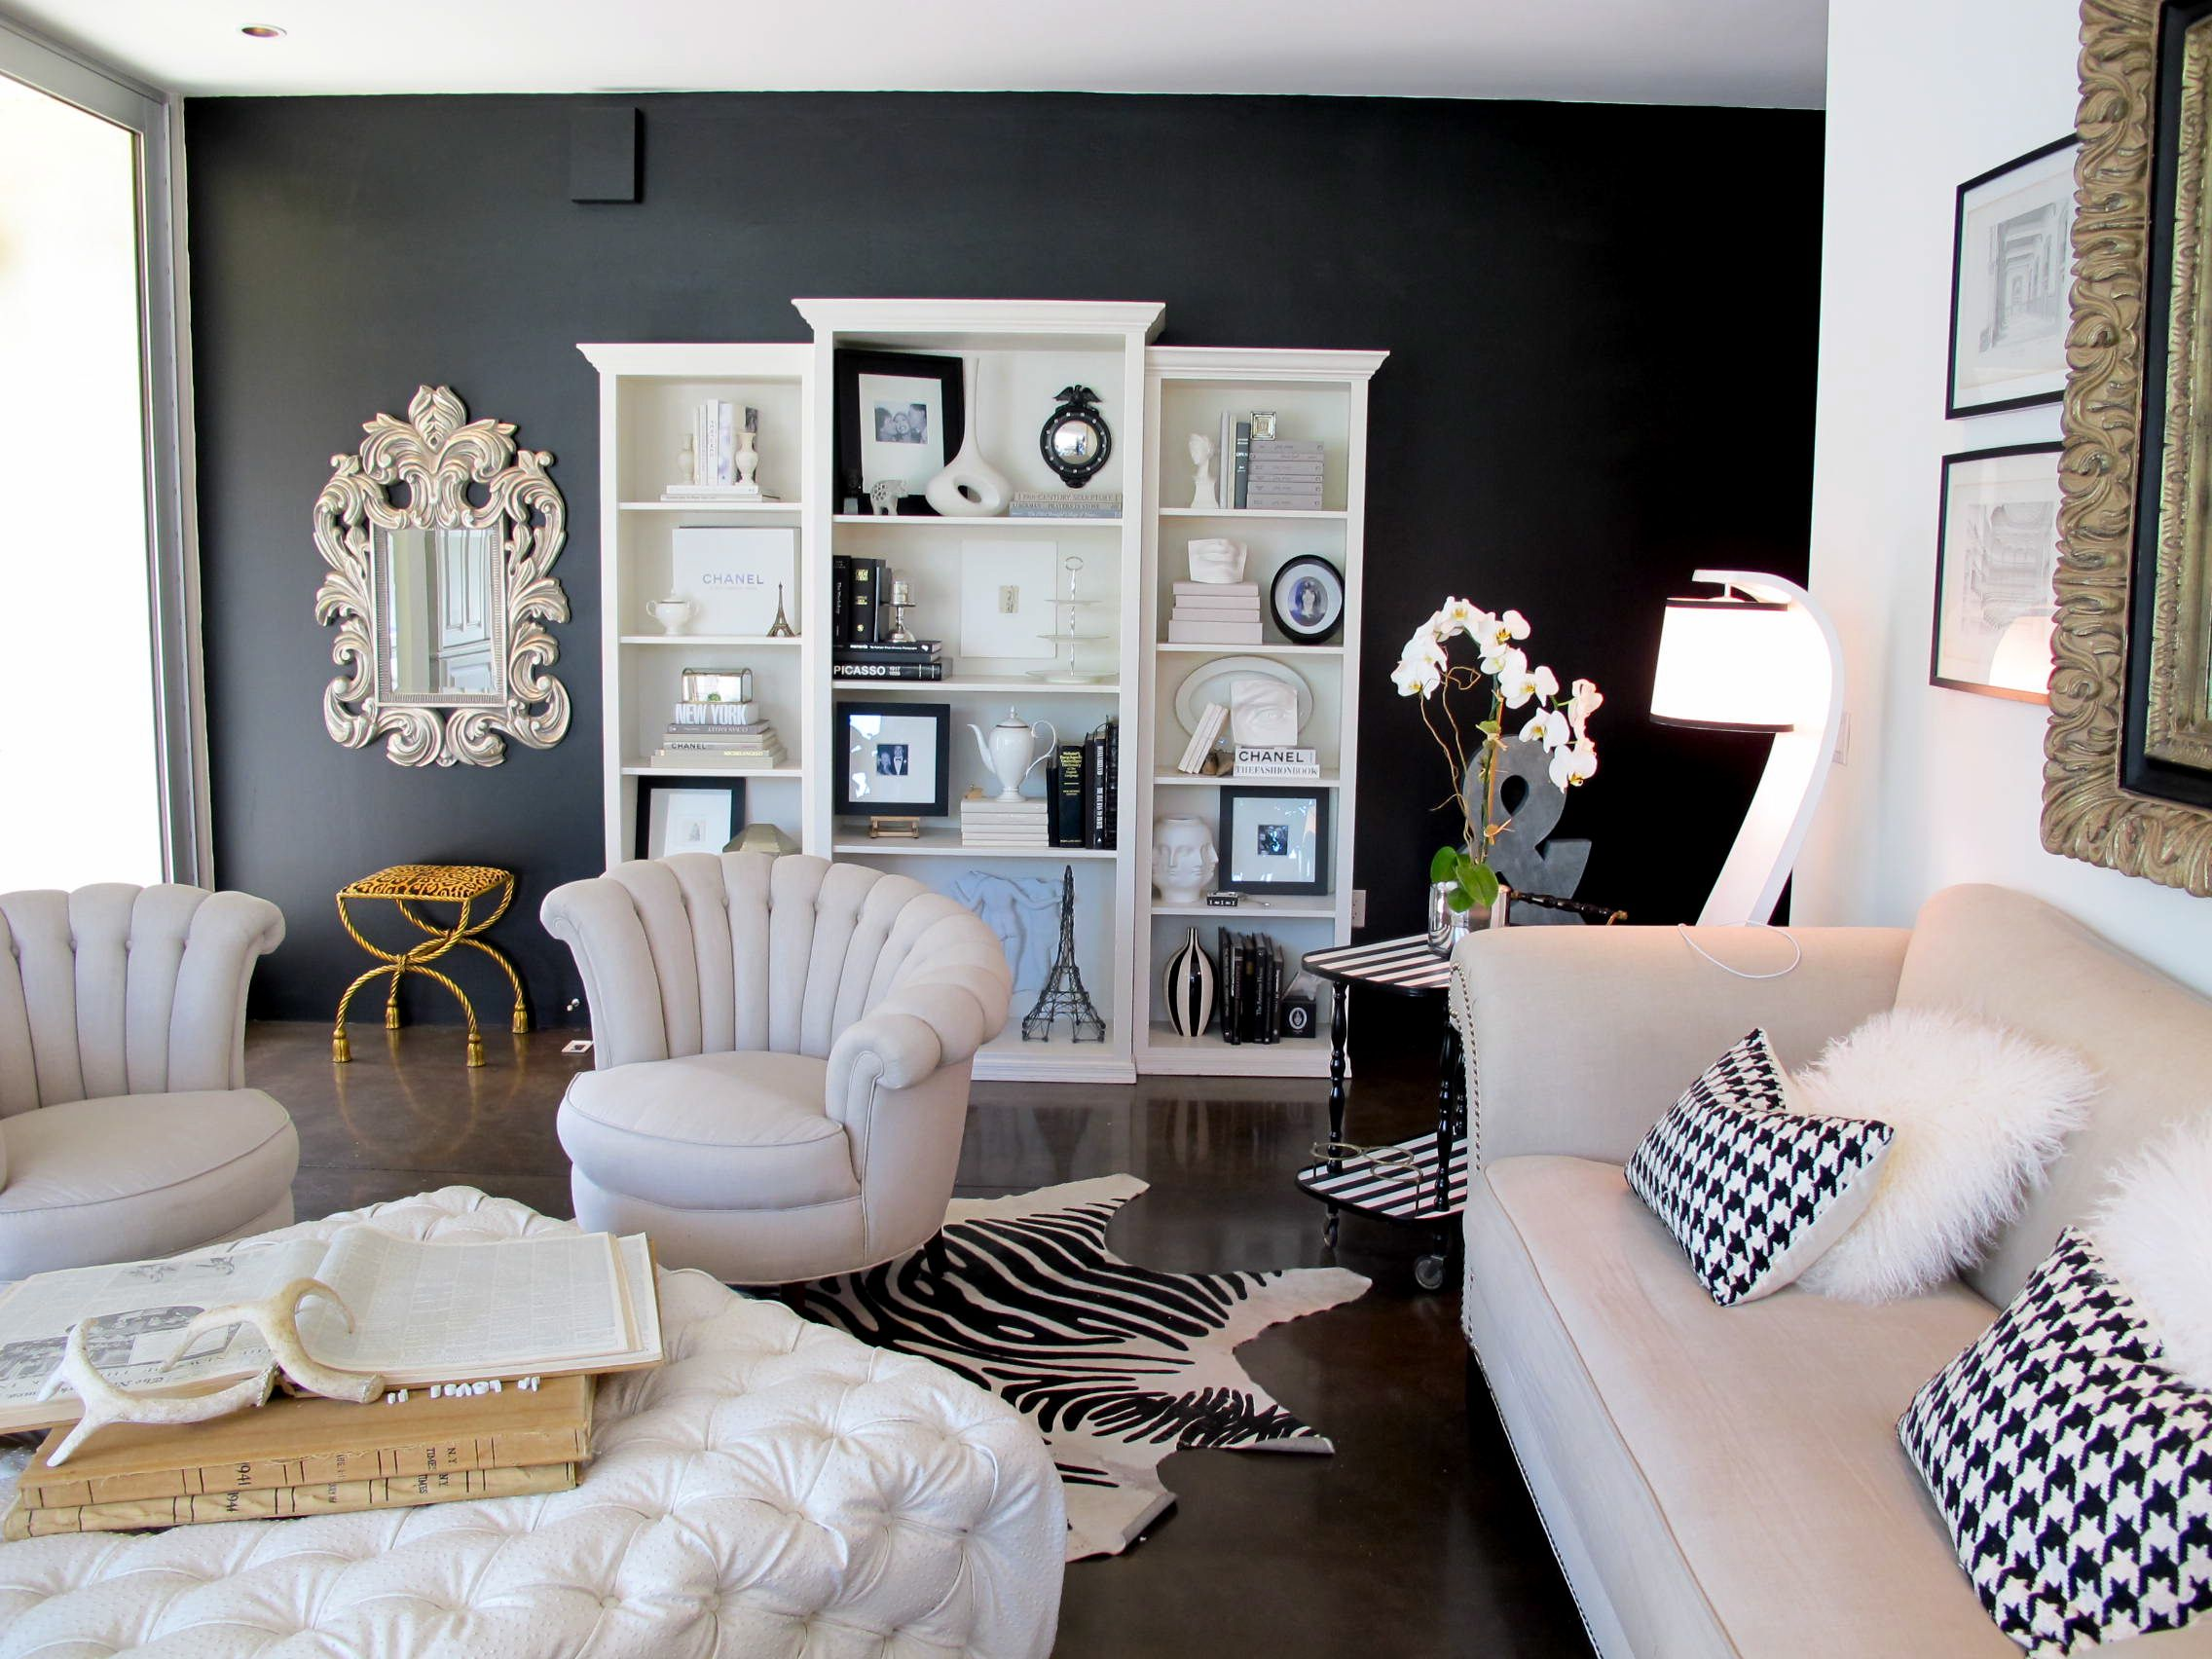 Black Accent Wall Jpg 2272 1704 Accent Walls In Living Room White Furniture Living Room Black And White Living Room